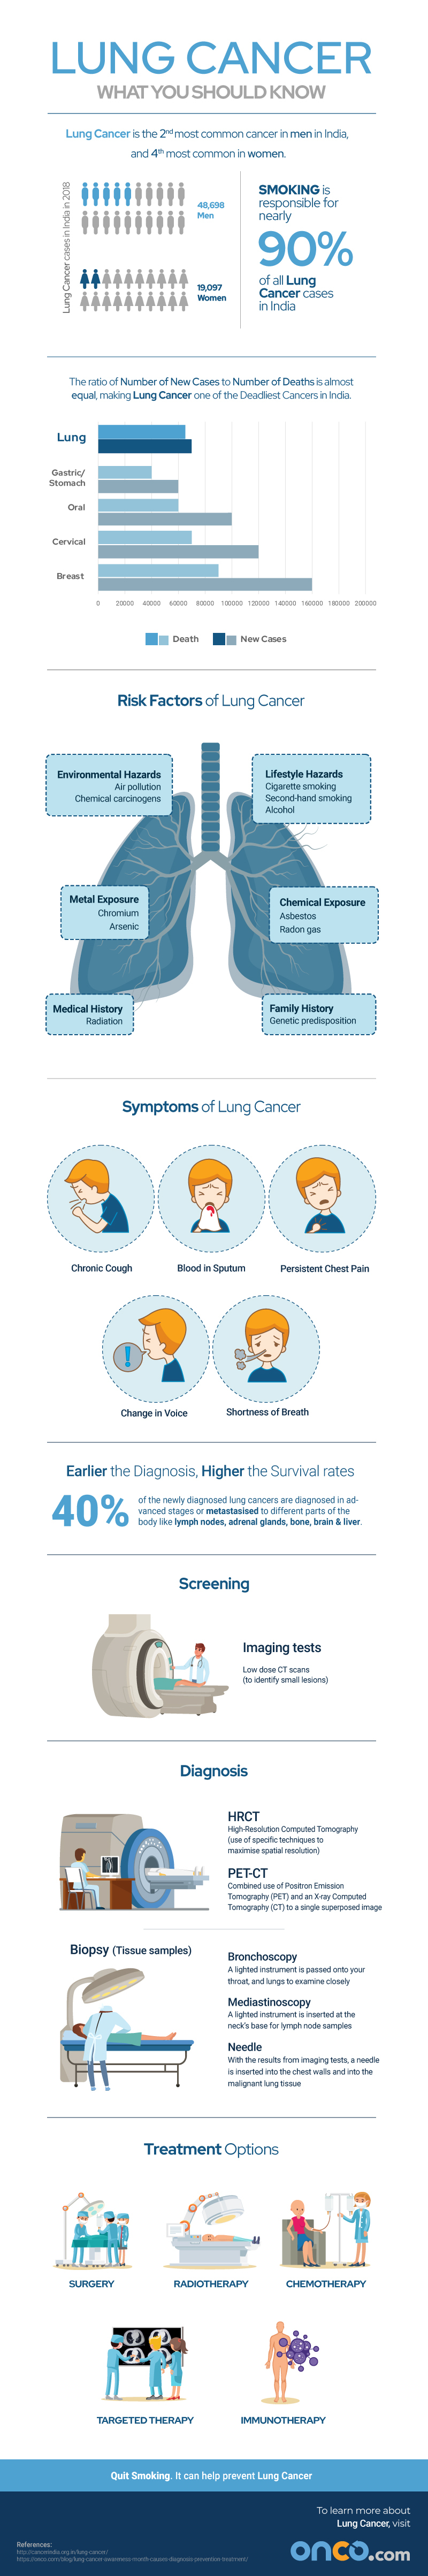 Learn about Lung Cancer - Infographic